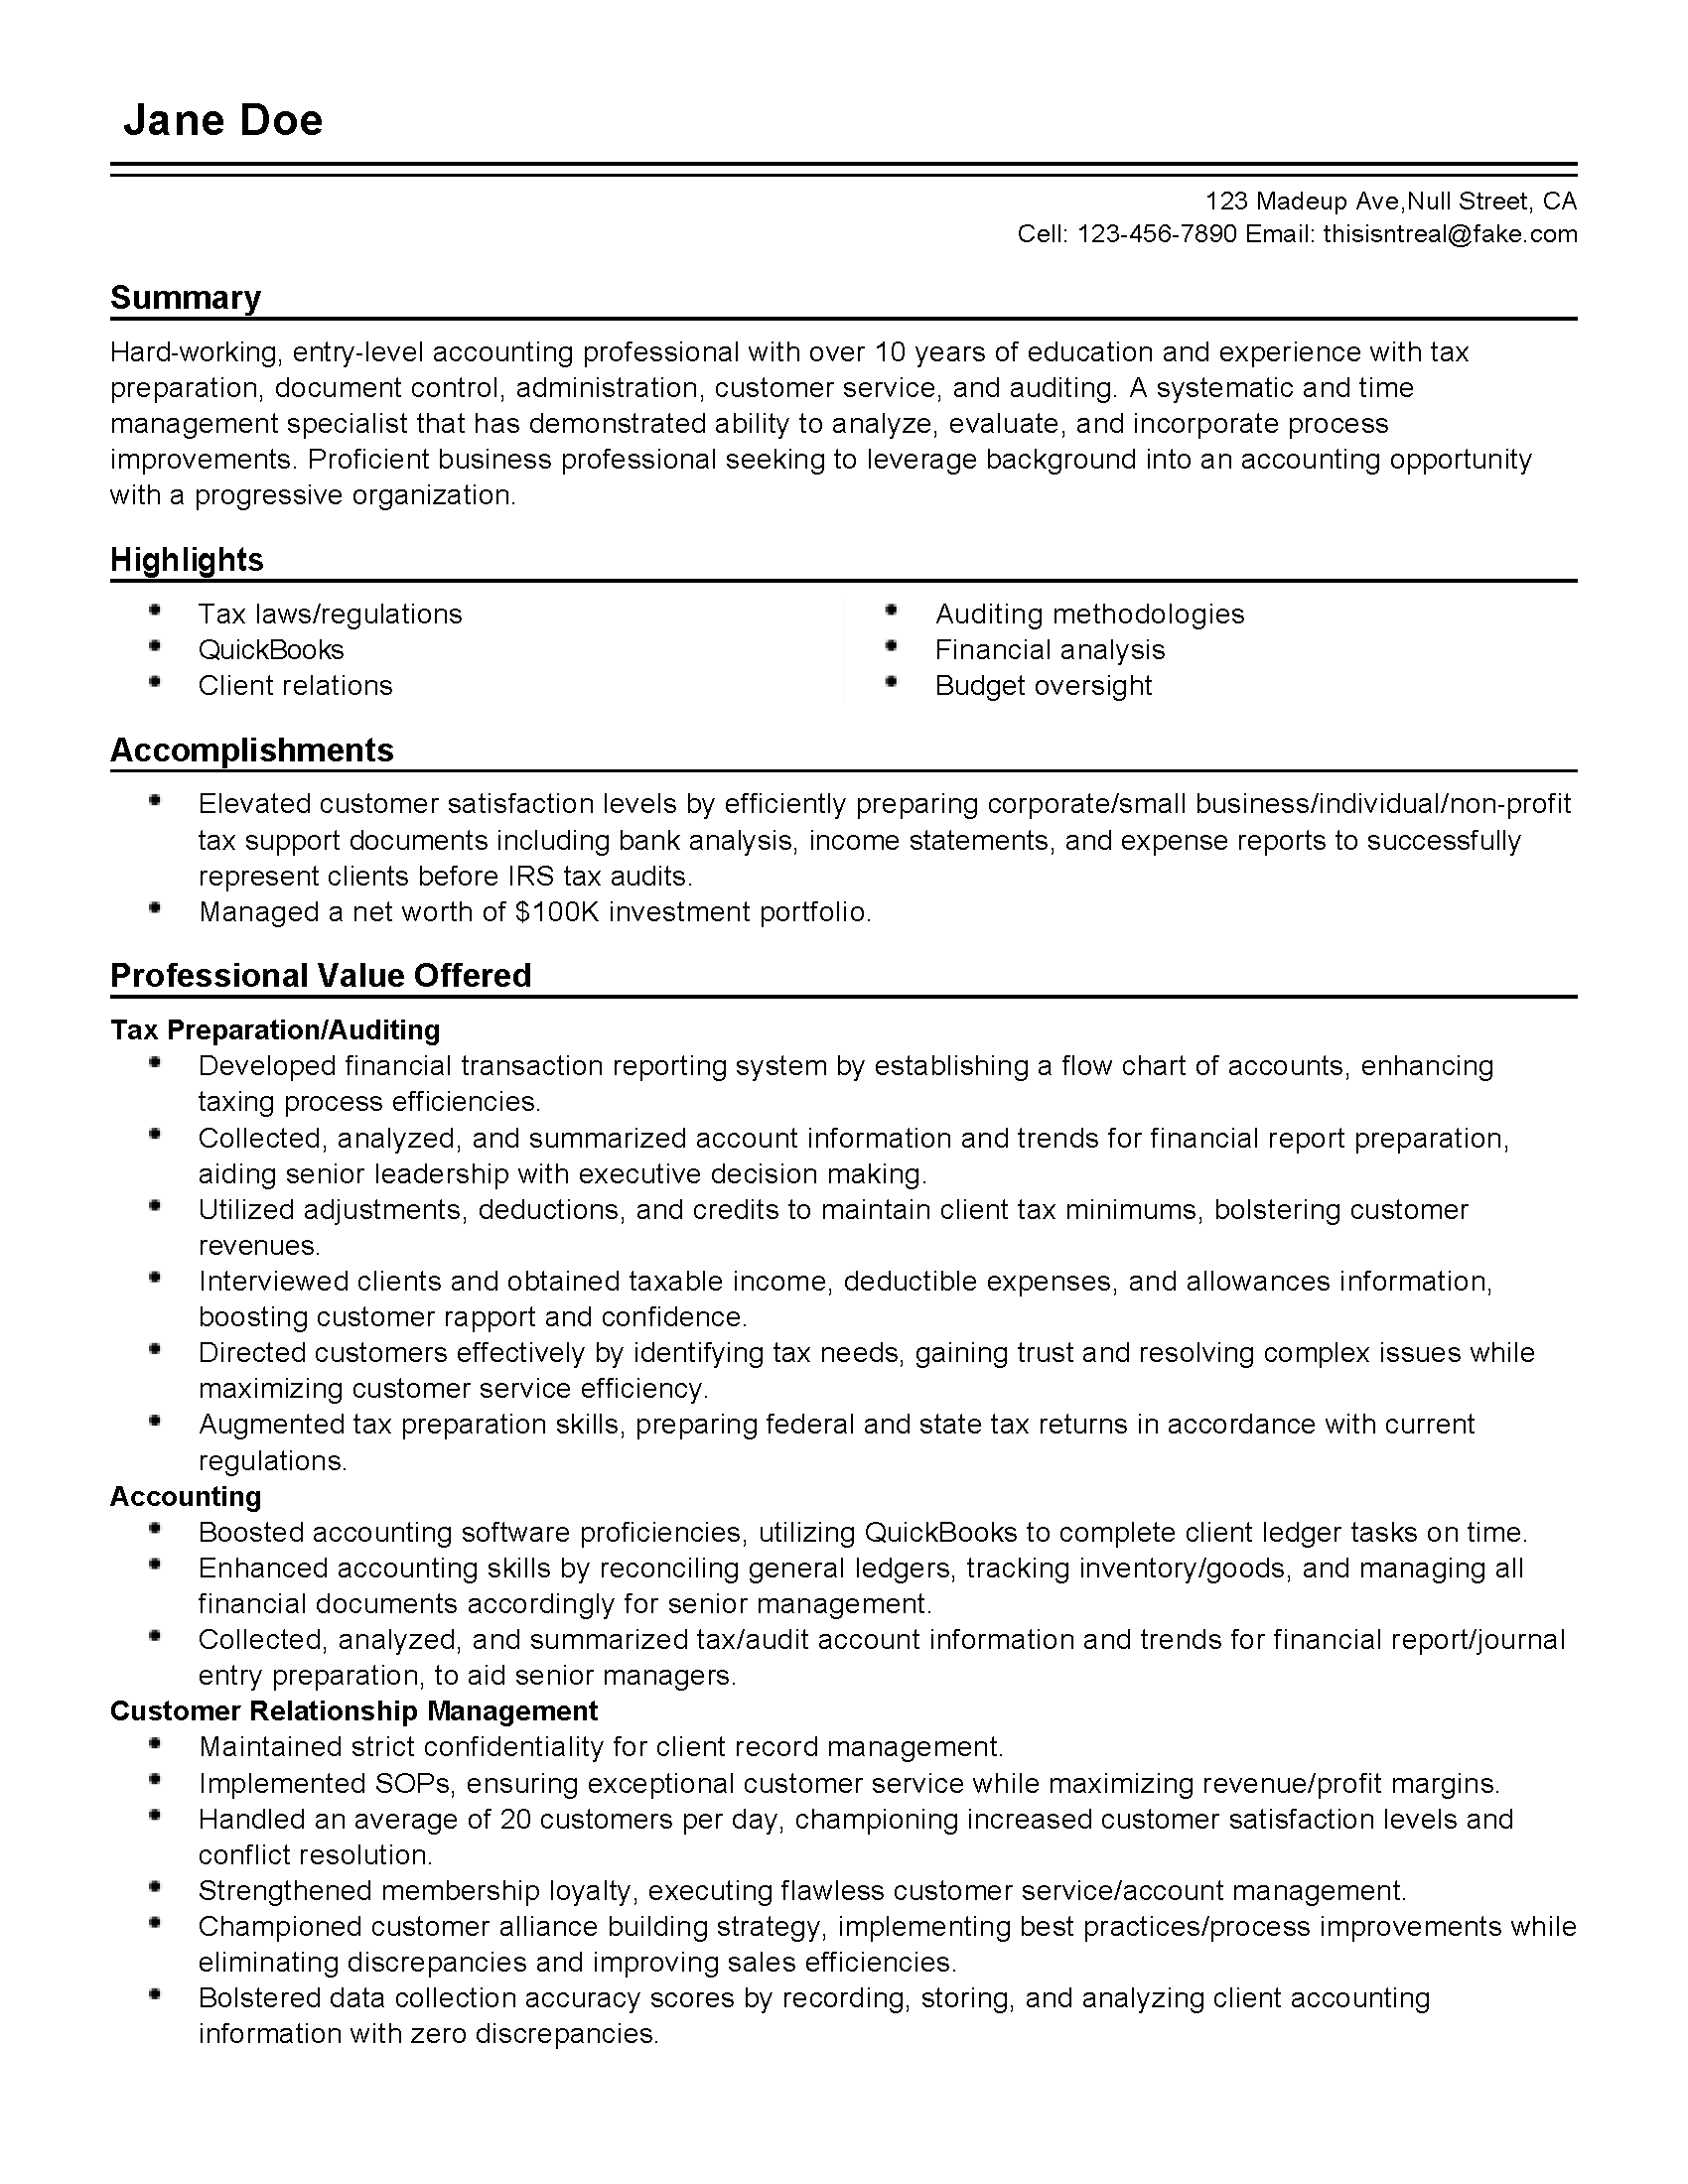 Faking Your Resume Professional Entry Level Accounting Professional Templates